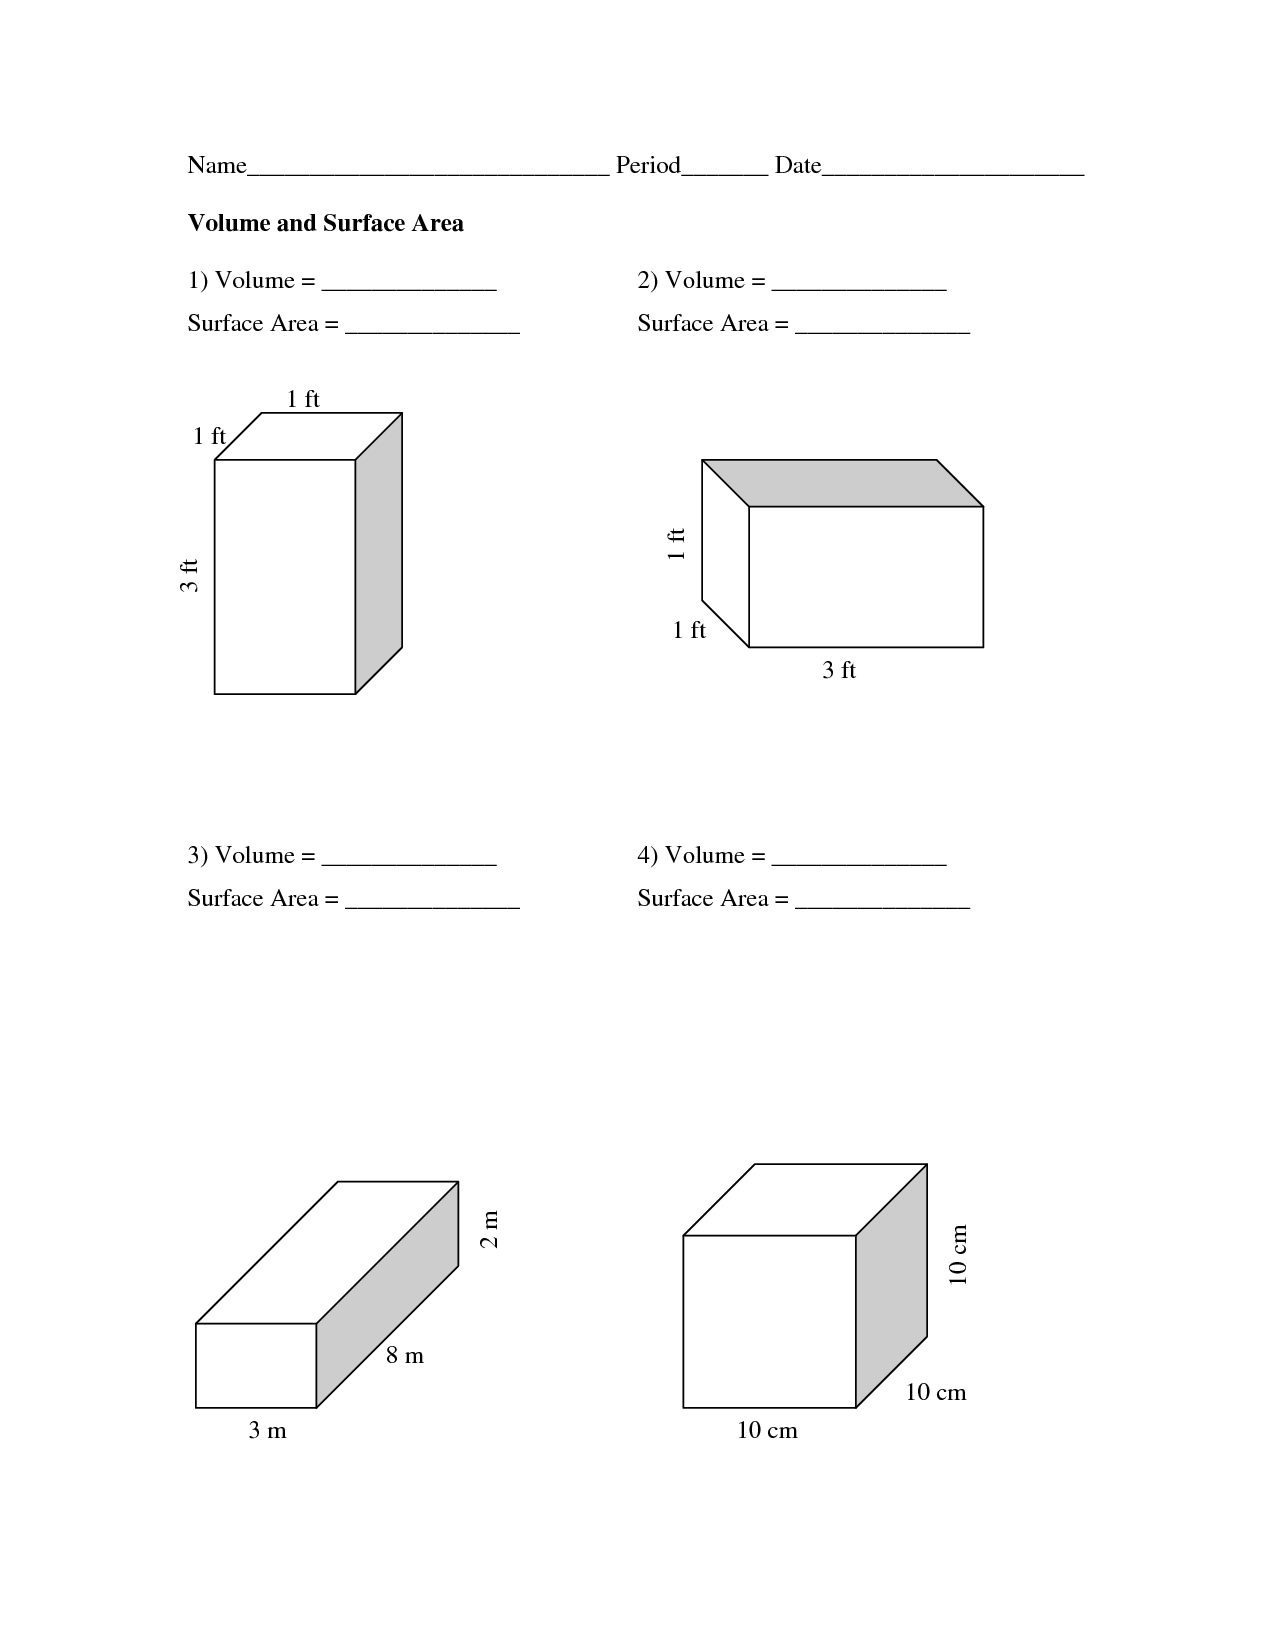 volume and surface area worksheets   Volume and Surface Area Worksheets -  PDF   Area worksheets [ 1650 x 1275 Pixel ]